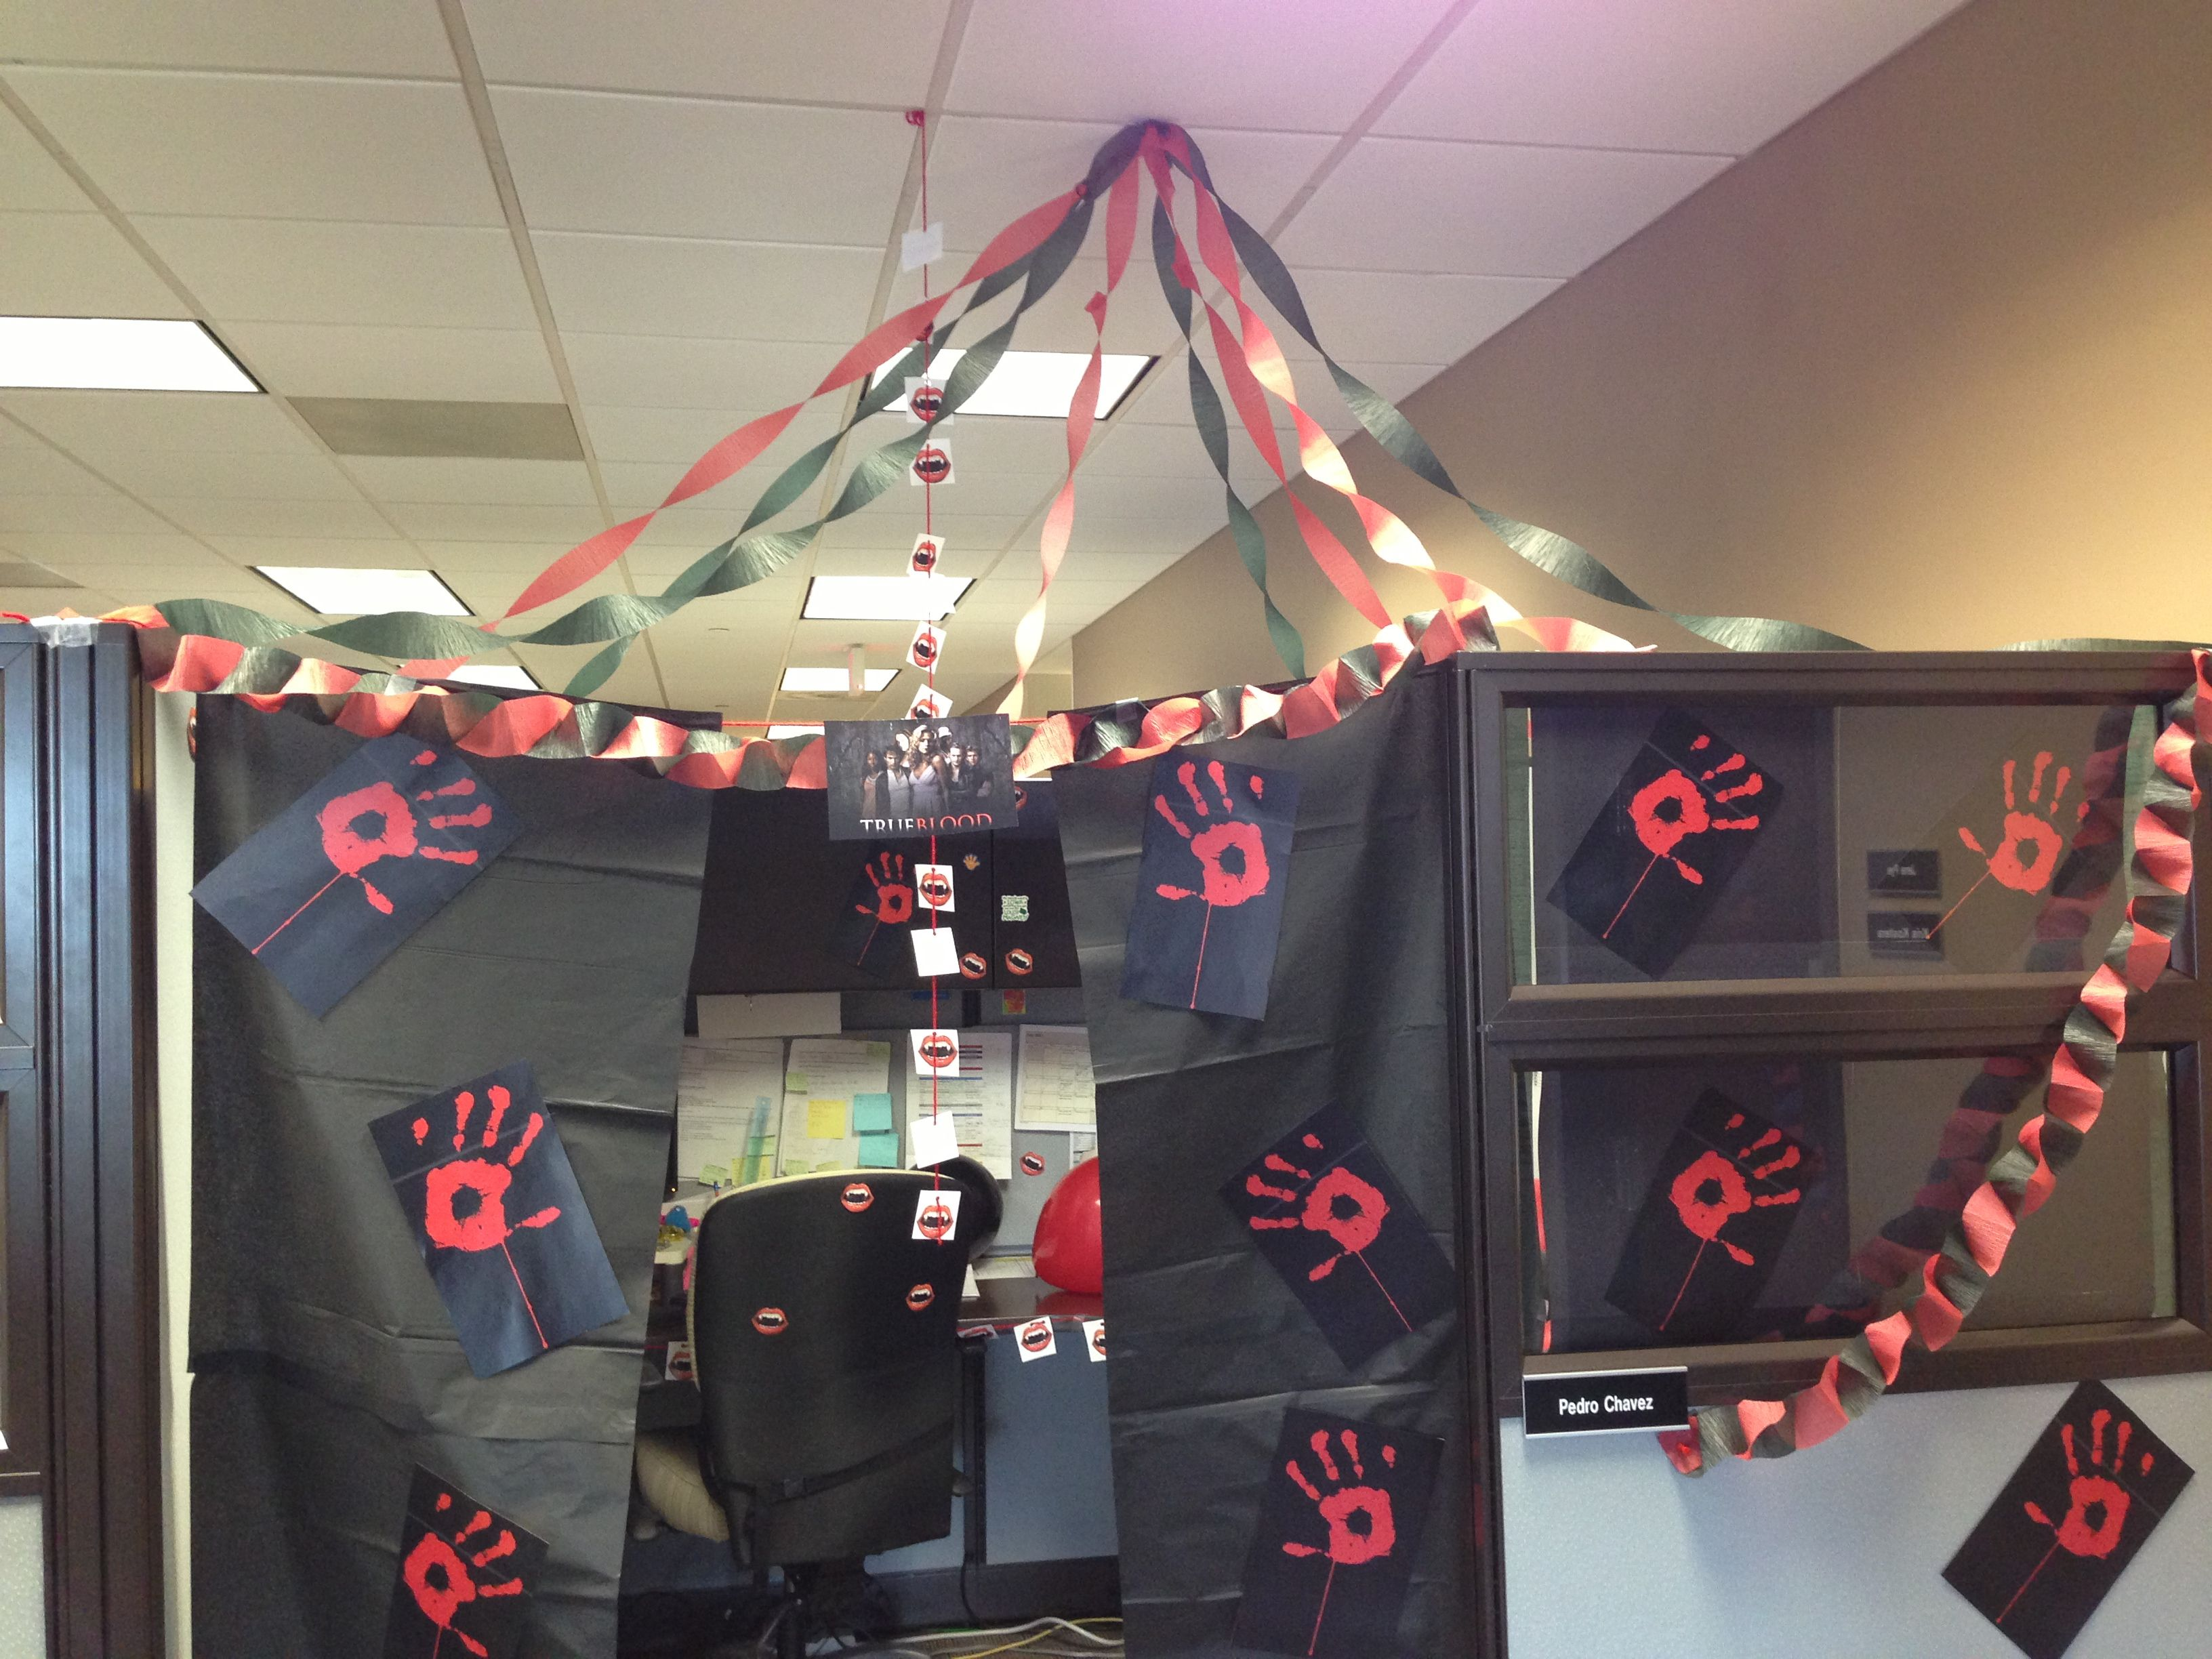 True blood inspired cubicle decorations done to